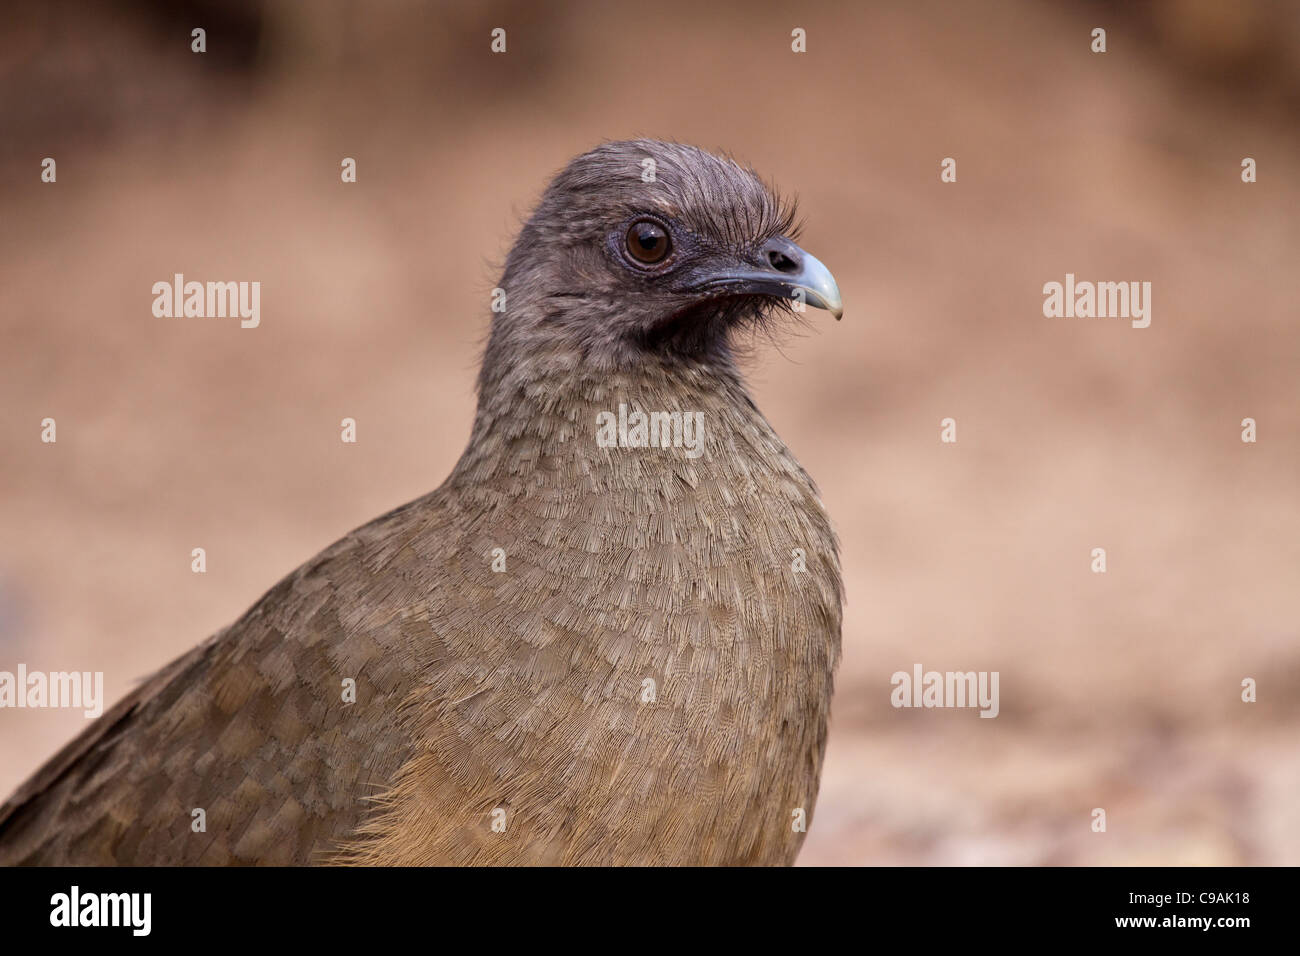 Plain Chachalaca, Ortalis vetula, at the Javelina-Martin ranch and refuge. - Stock Image